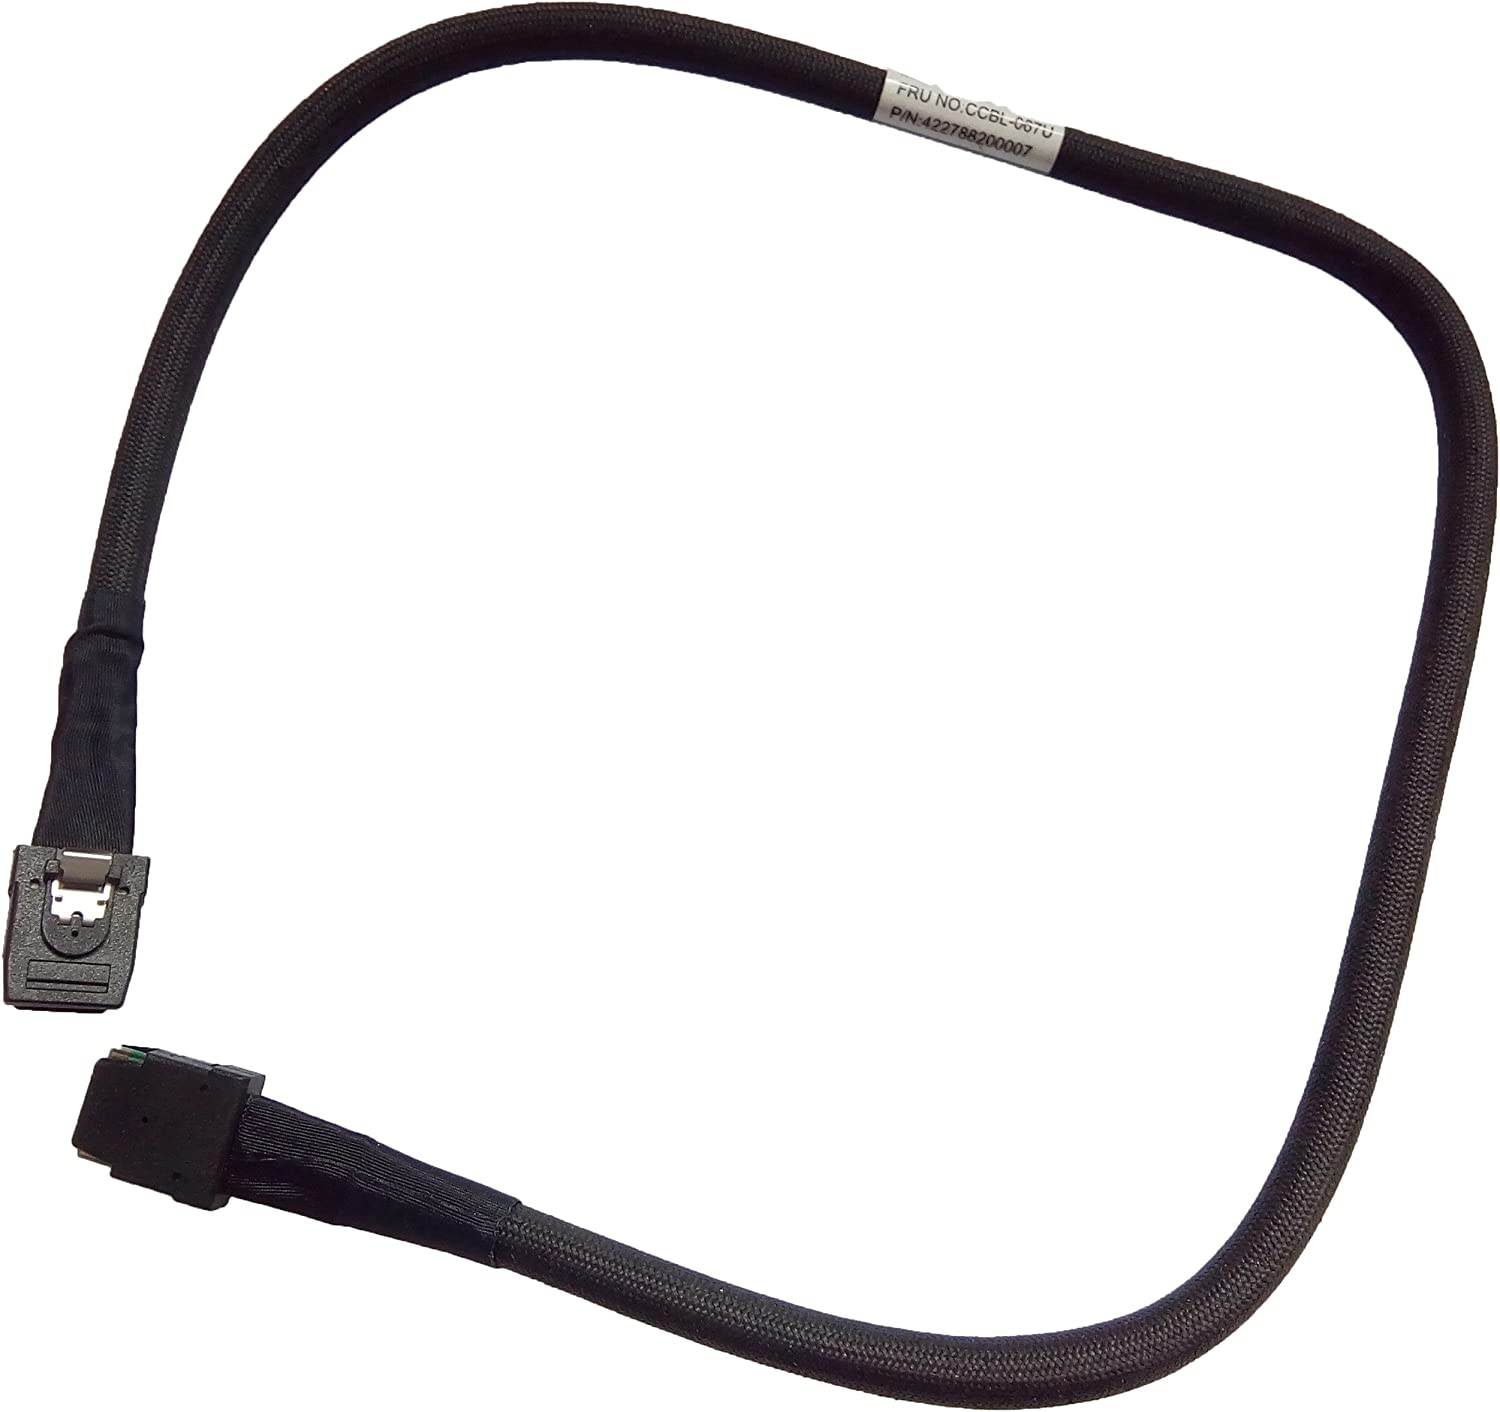 Internal mini-SAS SFF-8087, 36 Pin Male to mini-SAS Cable for Server or Control Card 2.0 Feet//0.6 Meter Cable Plus SFF-8087, 36 Pin 2 Pack